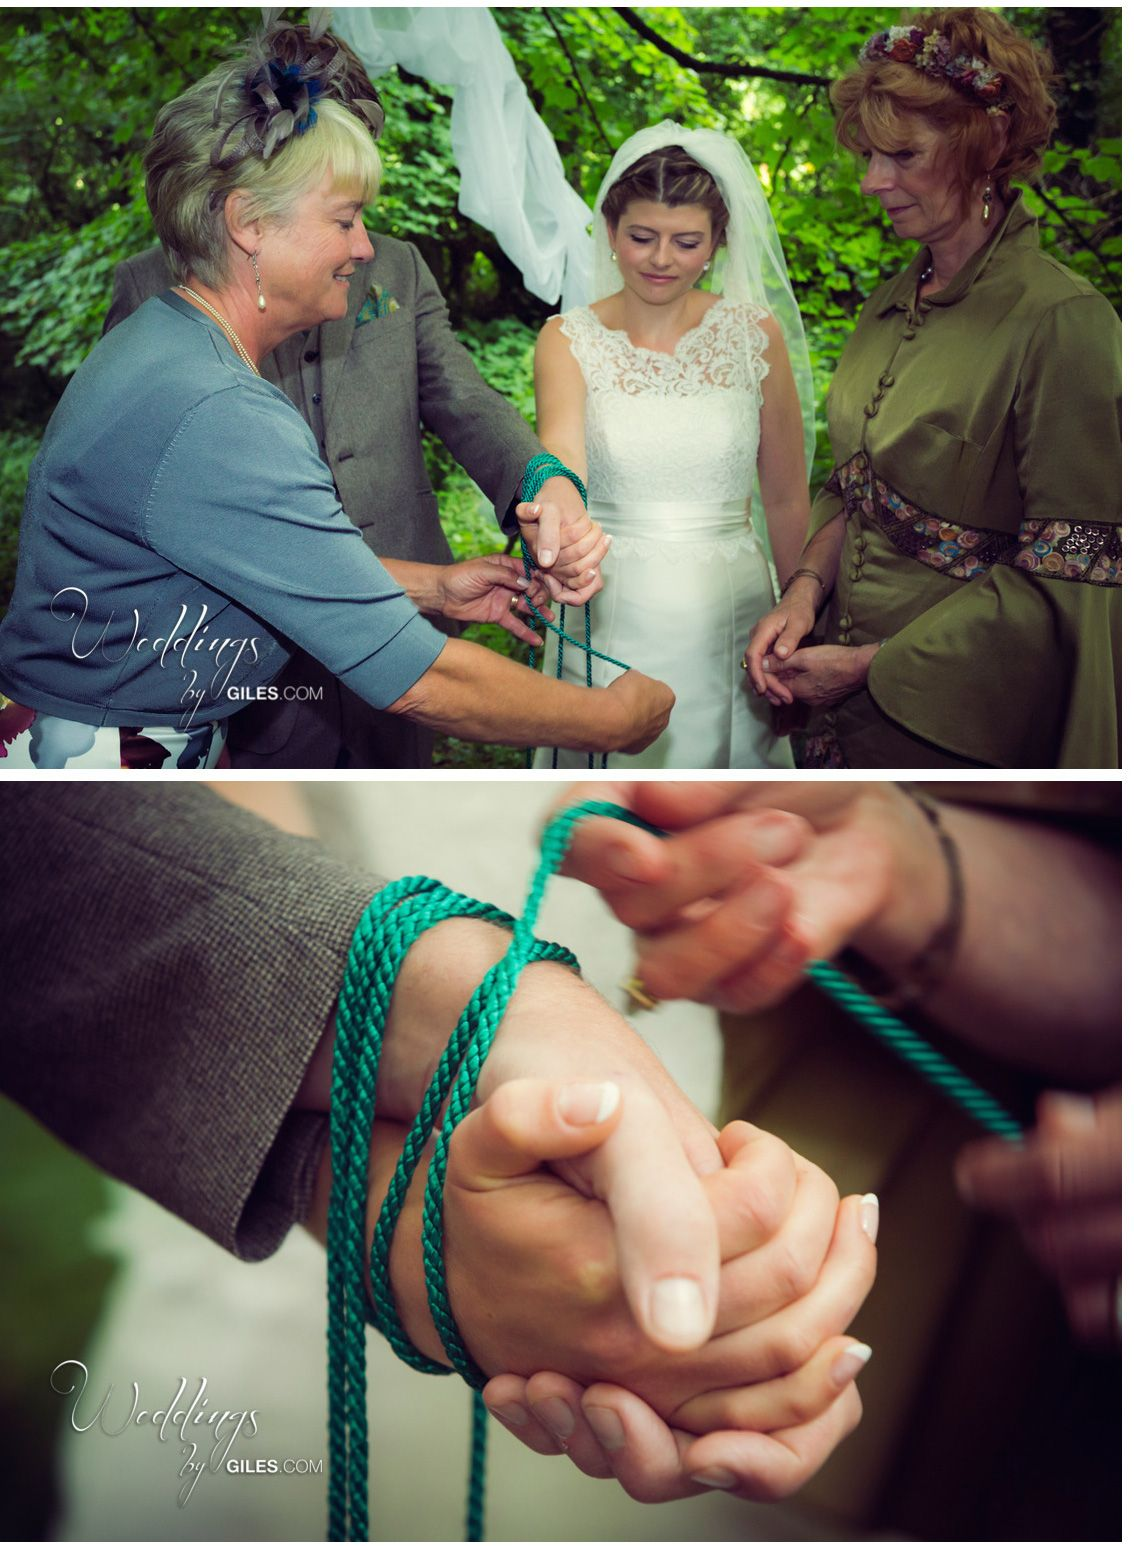 A stunning woodland hand fasting where the mums helped to fasten the hand fasting rituals and hand fasting ceremonies are really unique and offer a very symbolic way of showing your commitment during your wedding ceremony biocorpaavc Images